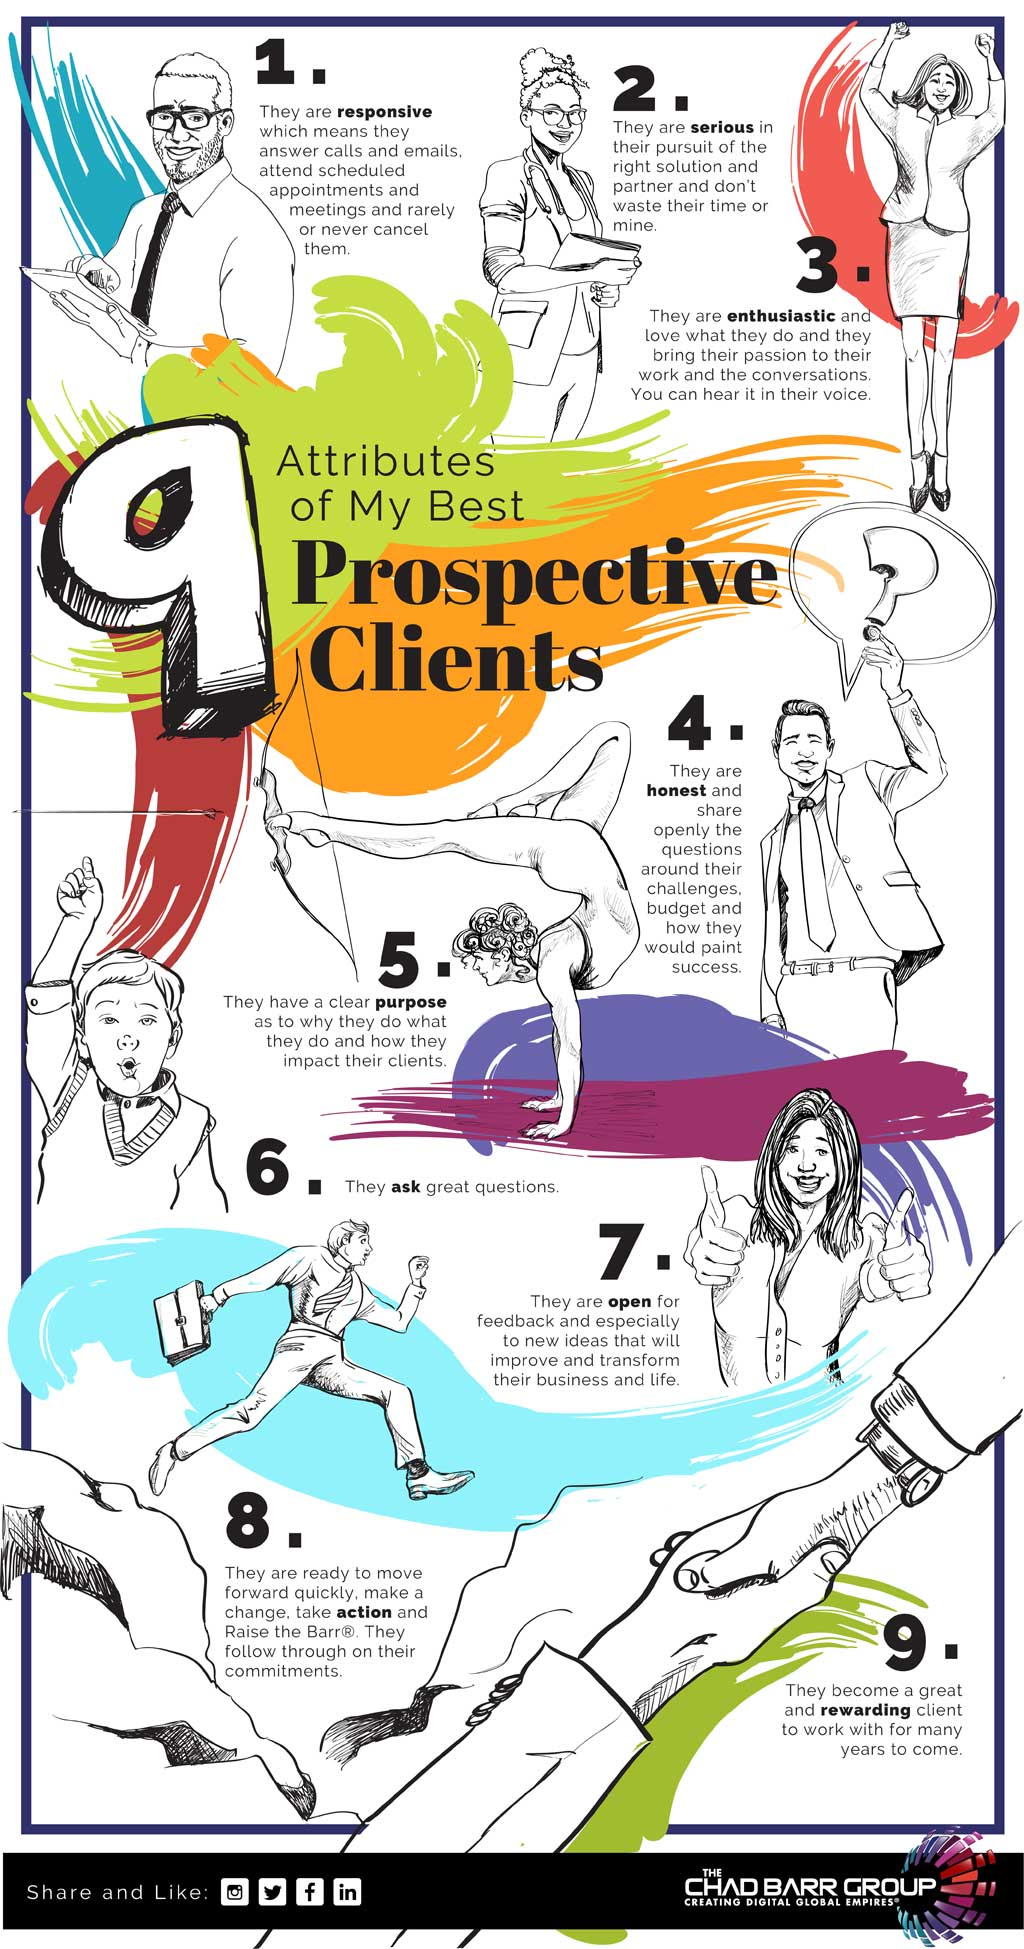 Attributes of My Best Prospective Clients